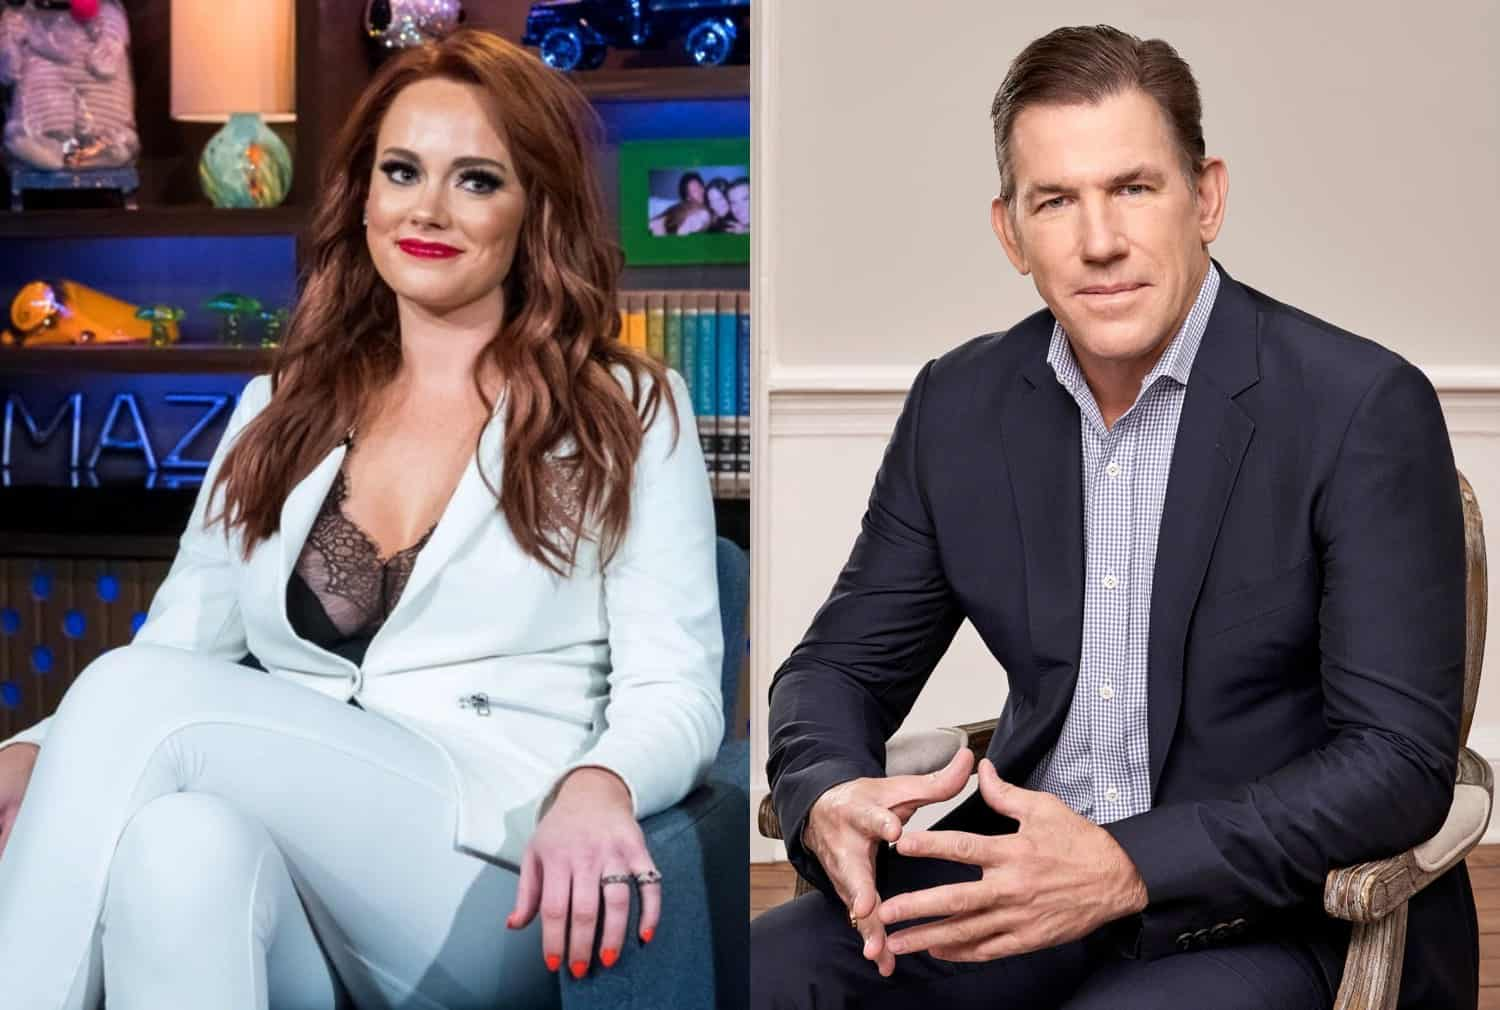 Southern Charm Kathryn Dennis vs Thomas Ravenel Child Custody Battle